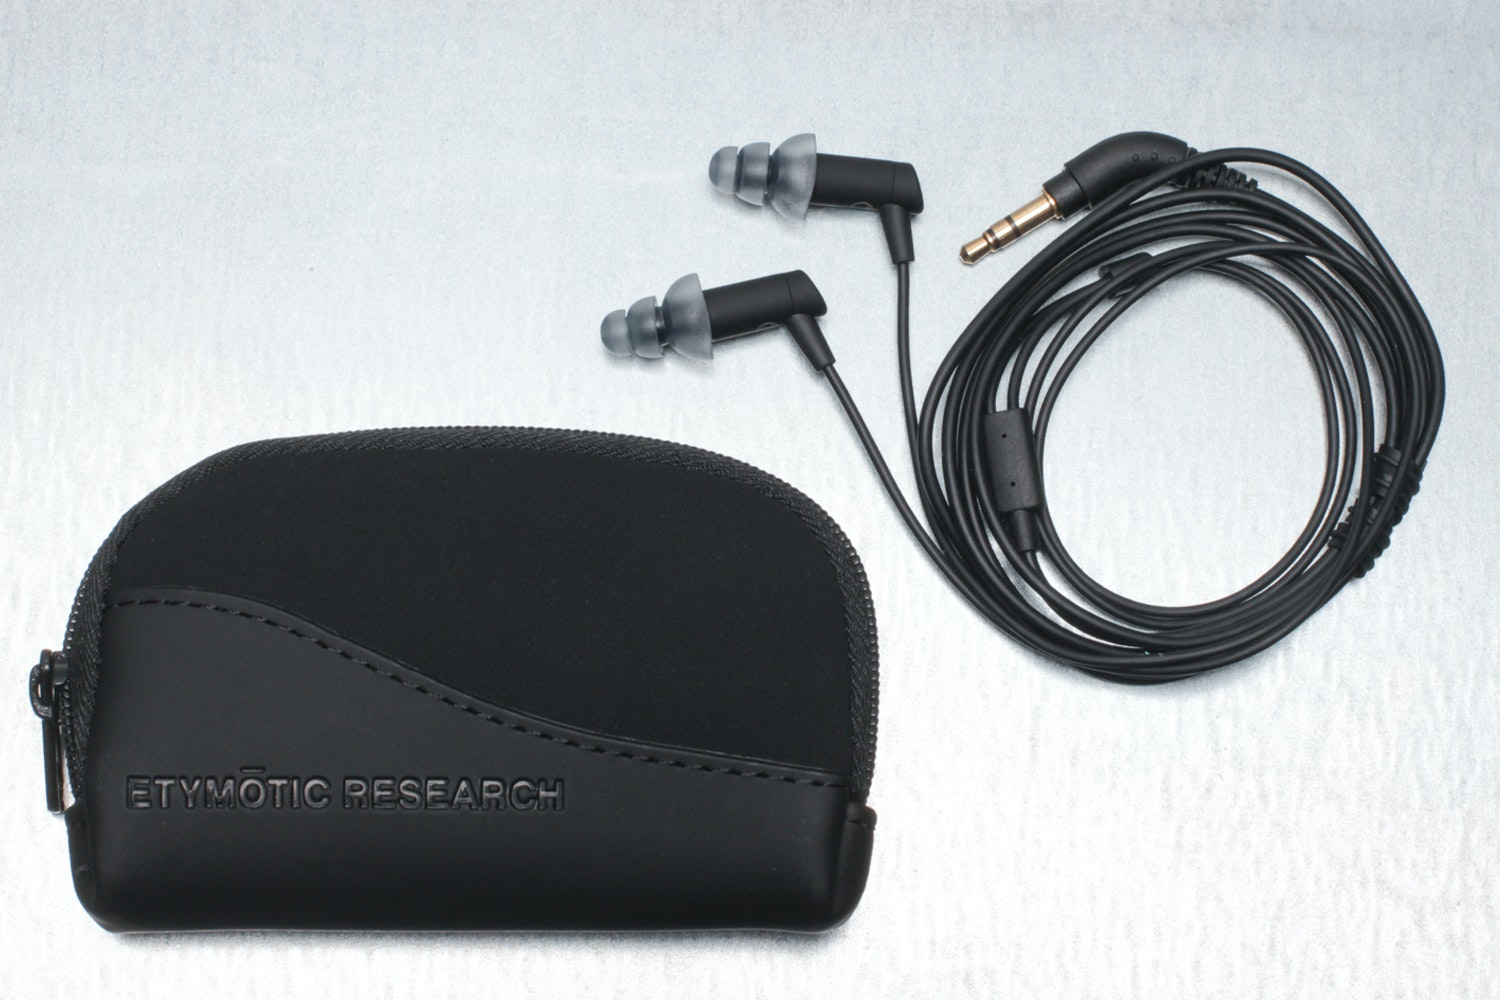 Etymotic Research Hf5 Portable In-Ear Monitors